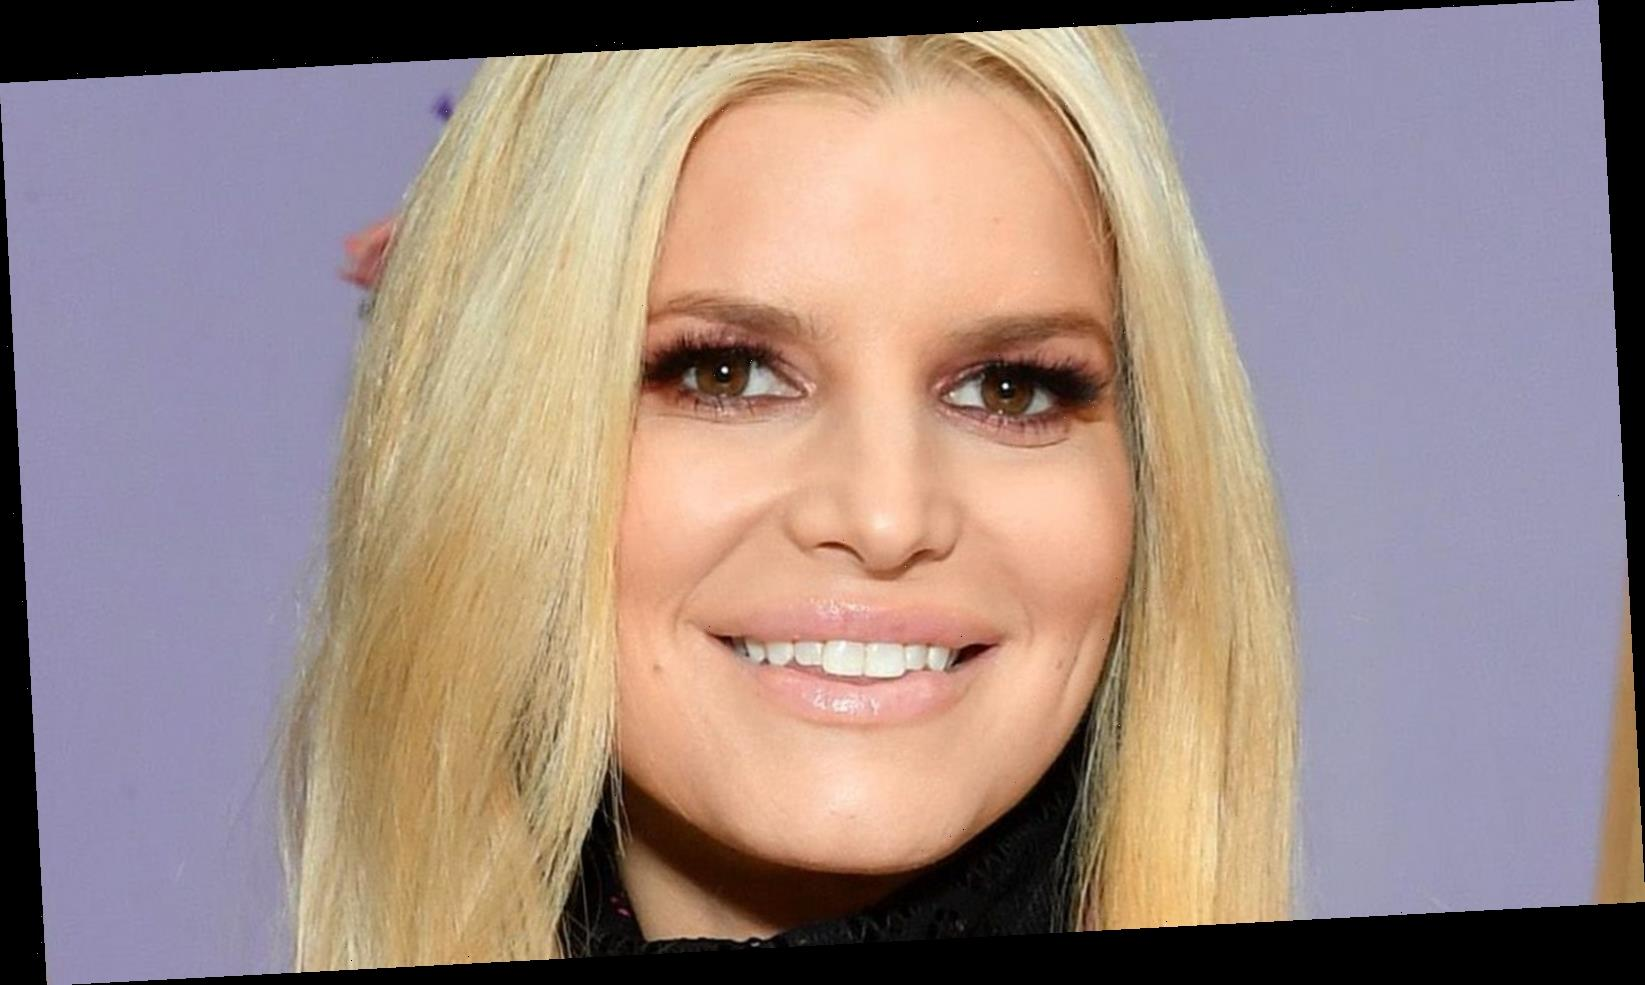 Jessica Simpson Opens Up About The Impact Weight Speculation Has On Her